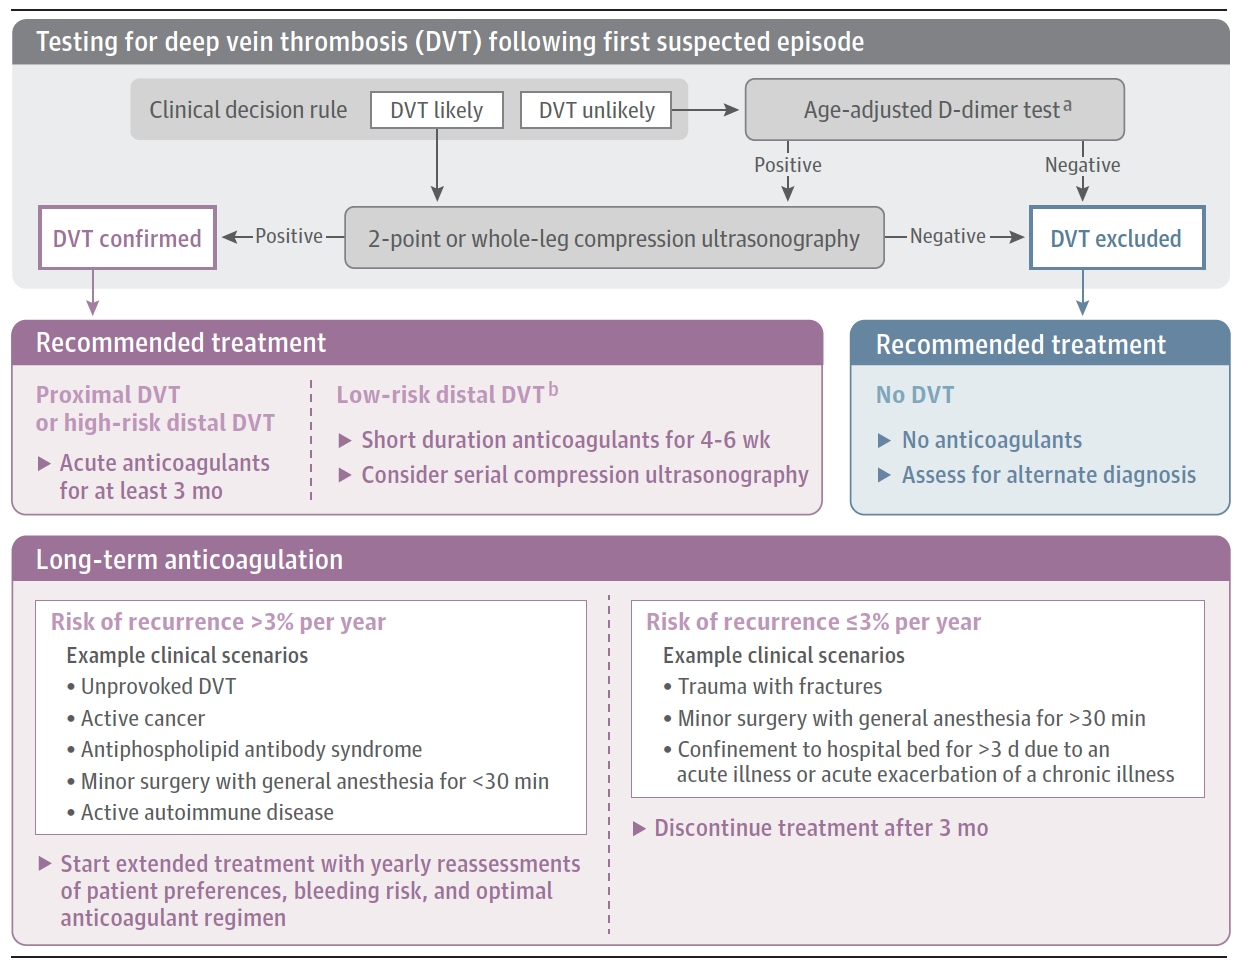 """From cited article with these disclaimers: """"This algorithm has not been validated in clinical trials but represents a synthesis of evidence-based approaches to DVT diagnosis and management. a Age-adjusted D-dimer threshold, calculated as the patient's age multiplied by 10 ng/mL for patients older than 50 years with suspected venous thromboembolism. b Low-risk patients: younger than 50 years, no cancer or prior venous thromboembolism, taking contraceptive or replacement hormonal therapy, and secondary to surgery or immobilization when complete mobilization is achieved."""""""